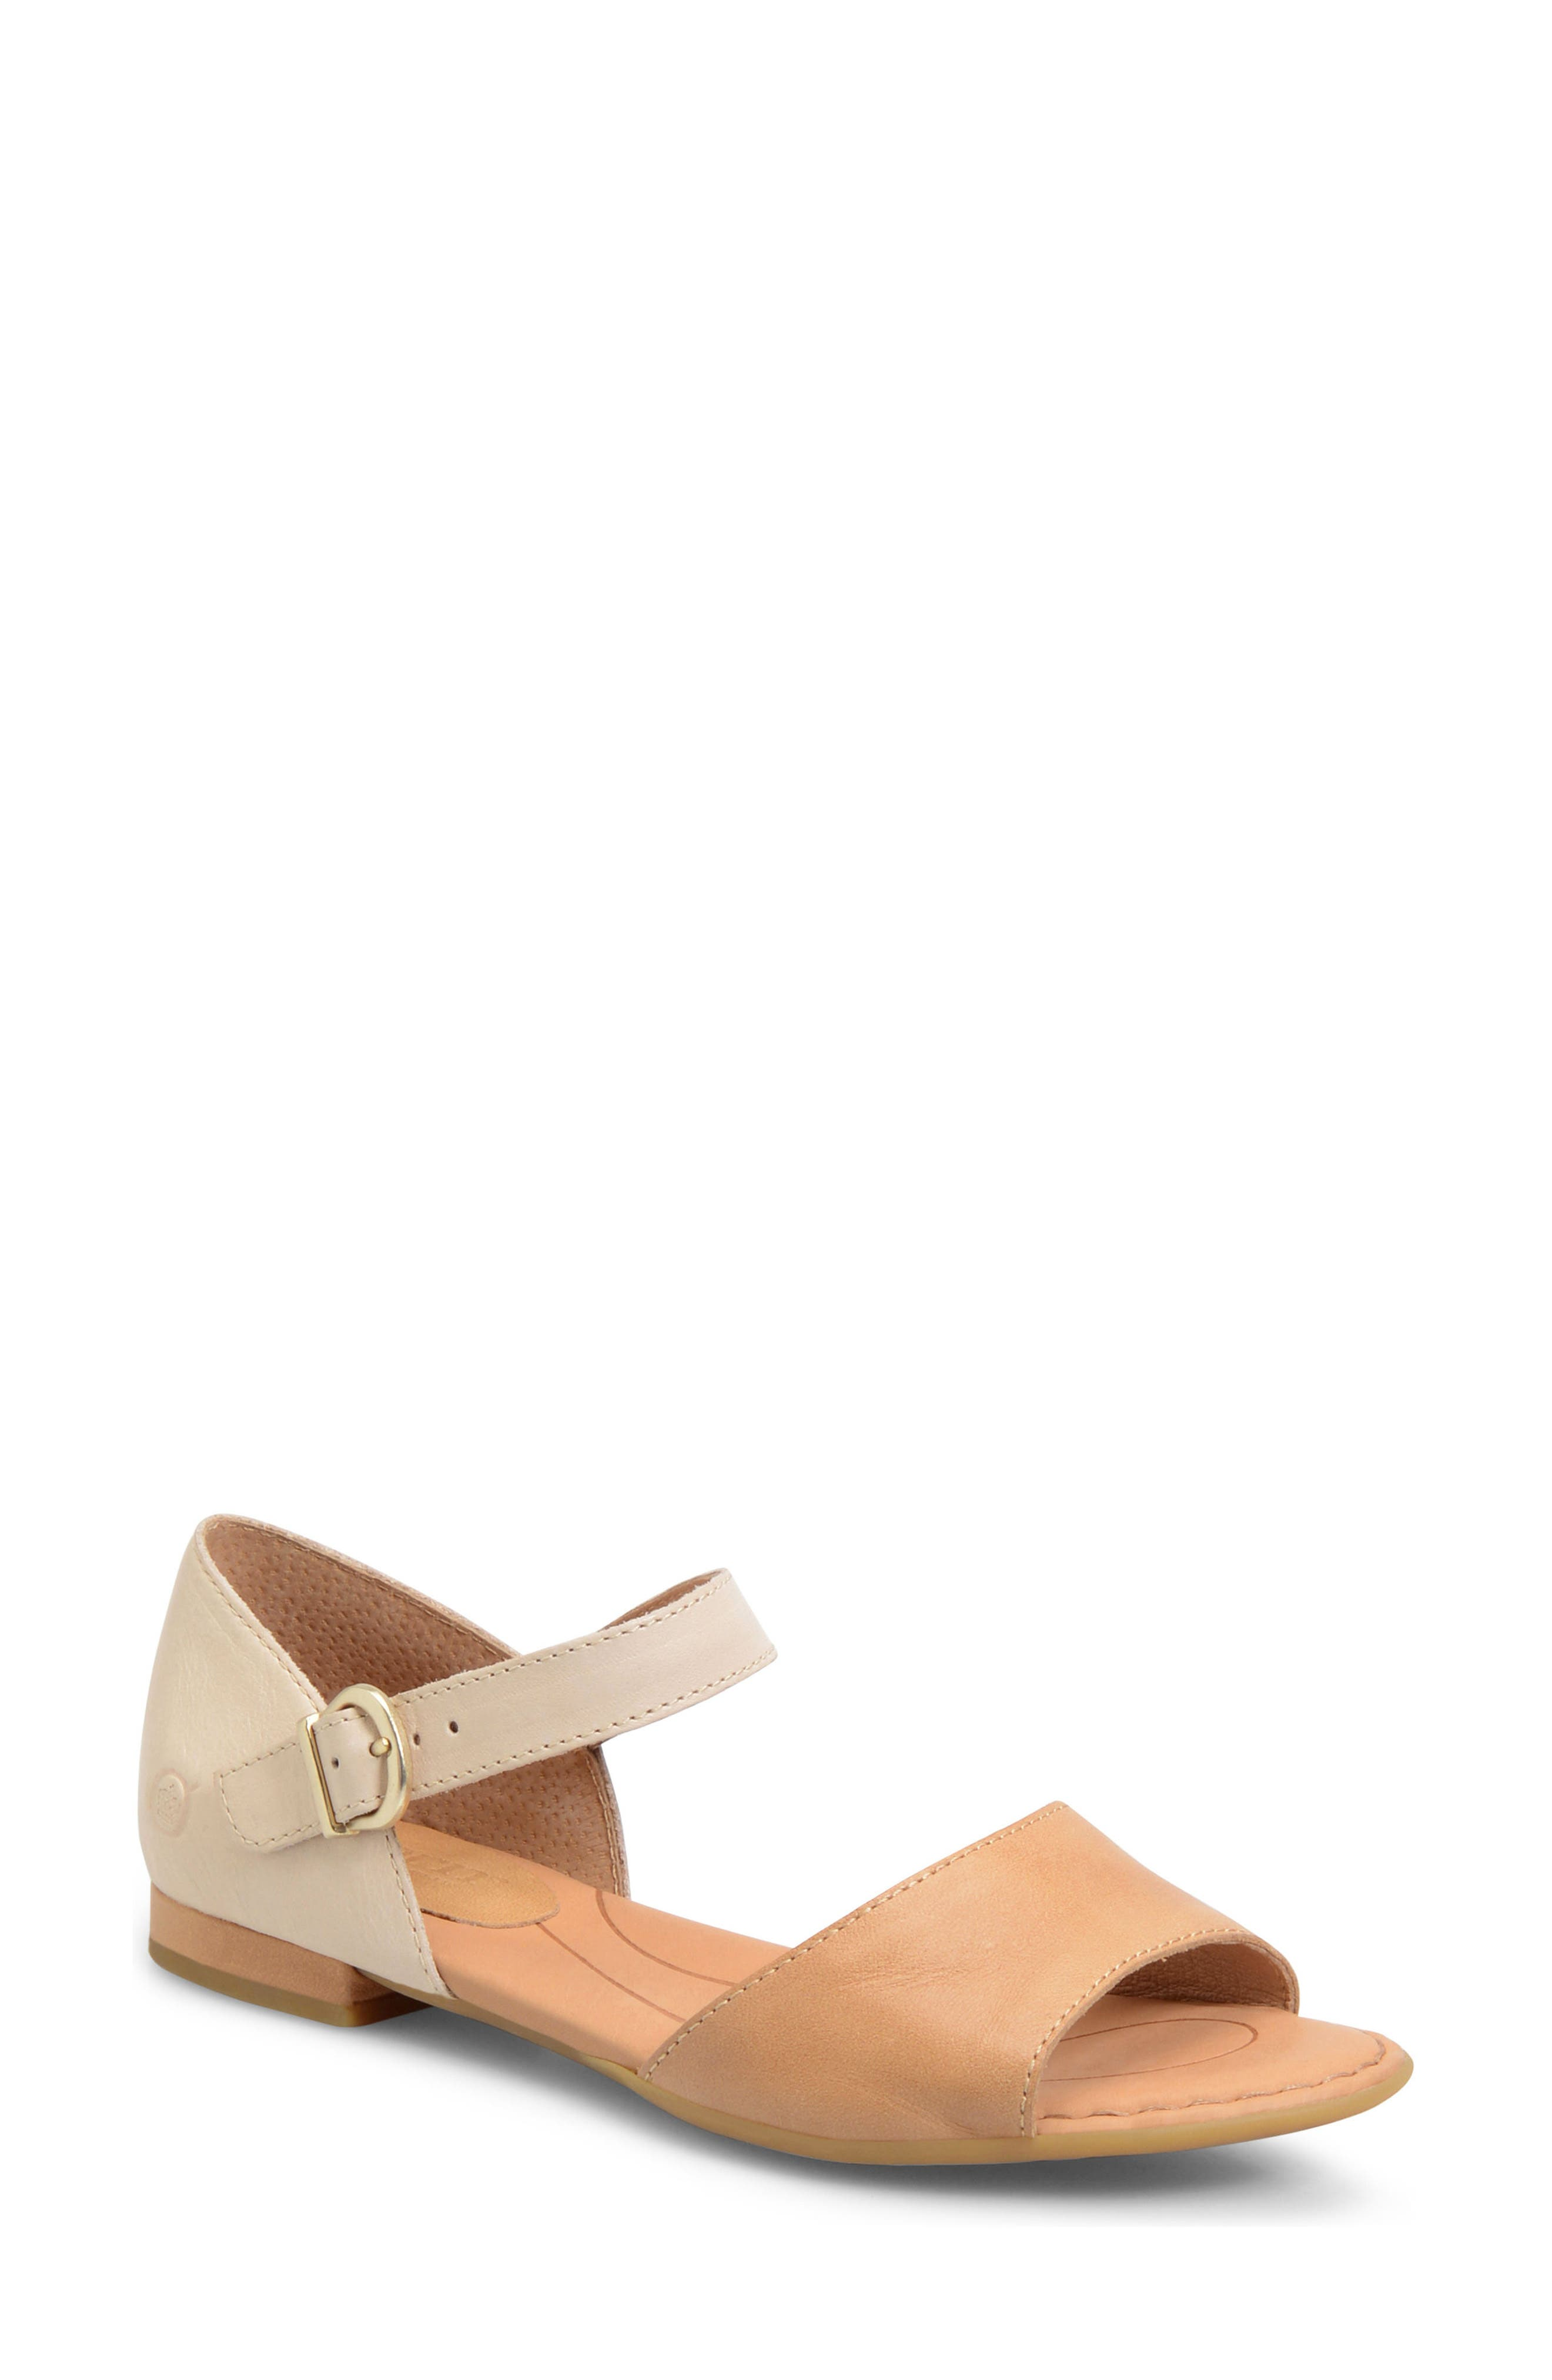 Cairo d'Orsay Sandal,                             Main thumbnail 1, color,                             Natural Leather